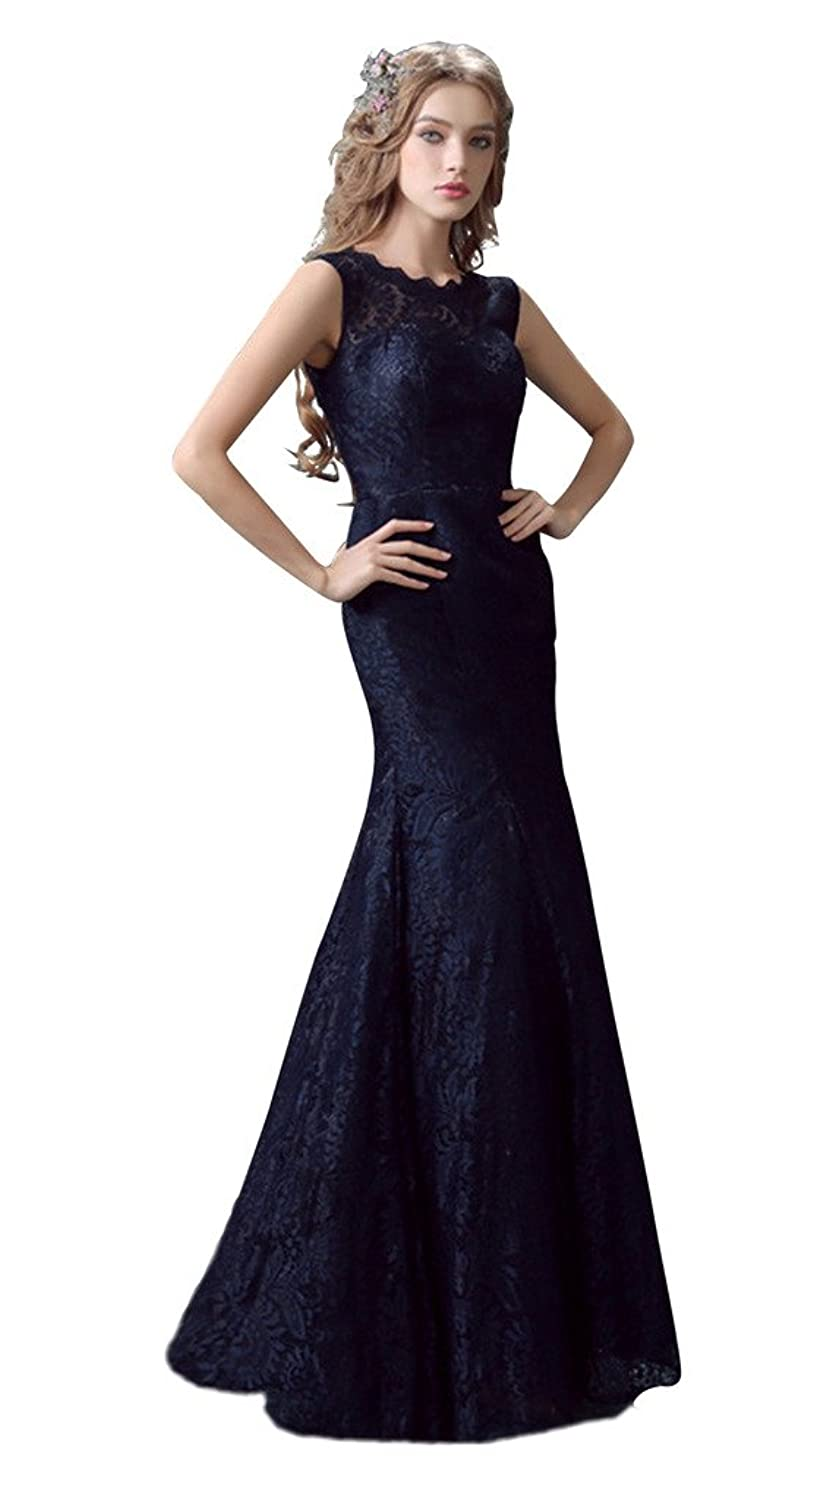 Vimans? Women's Floor Length Navy Scoop Lace Mermaid Bridal Wedding Dresses